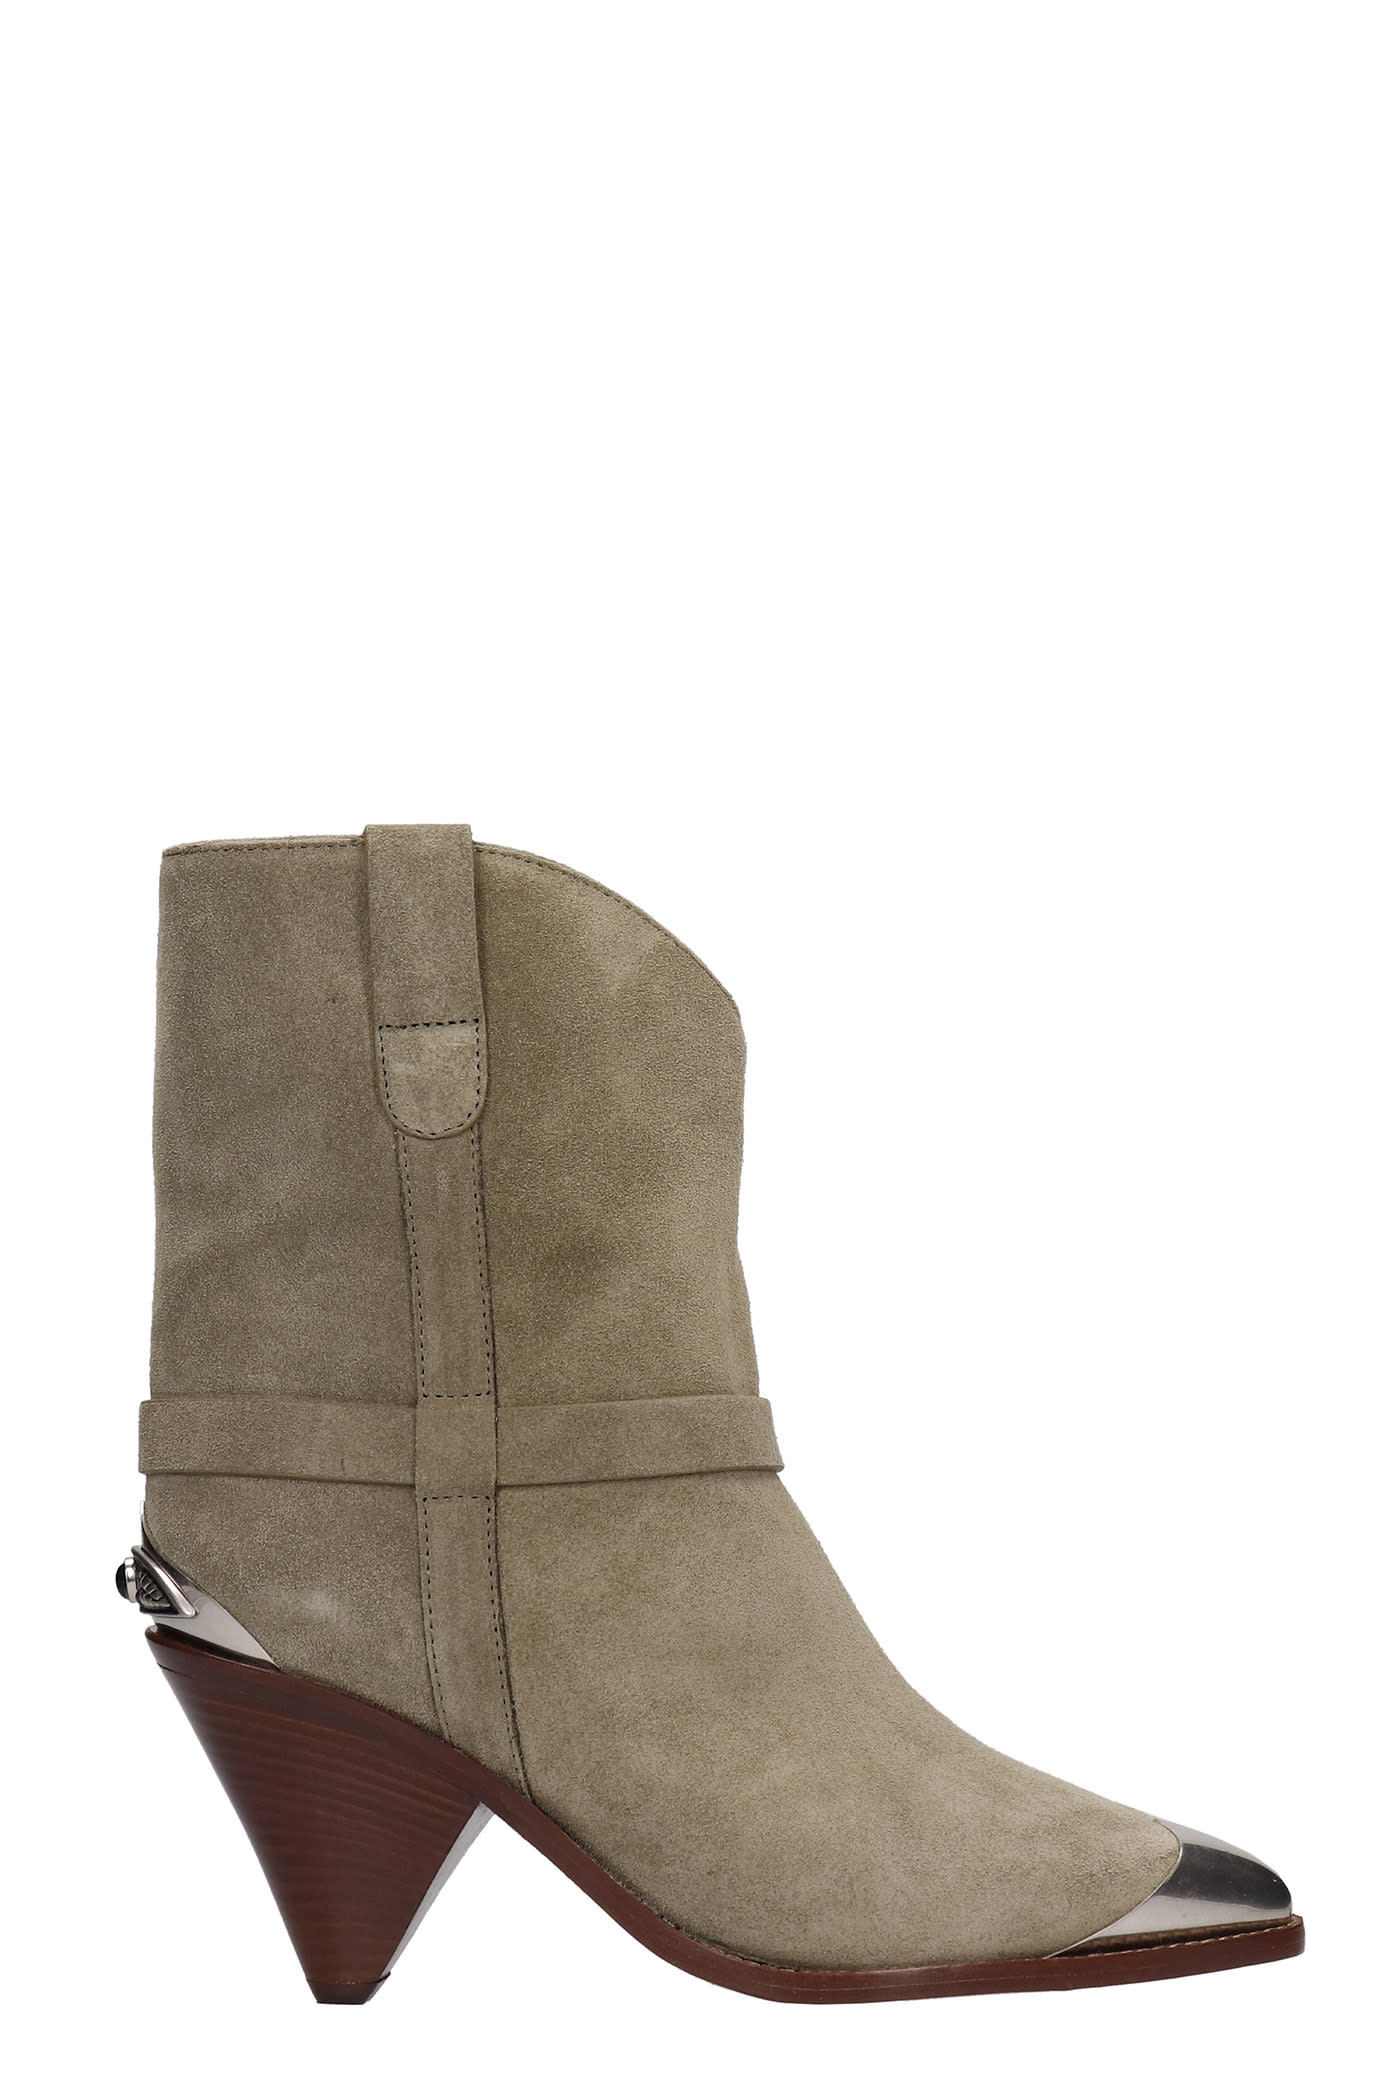 Buy Isabel Marant Limza Texan Ankle Boots In Taupe Suede online, shop Isabel Marant shoes with free shipping